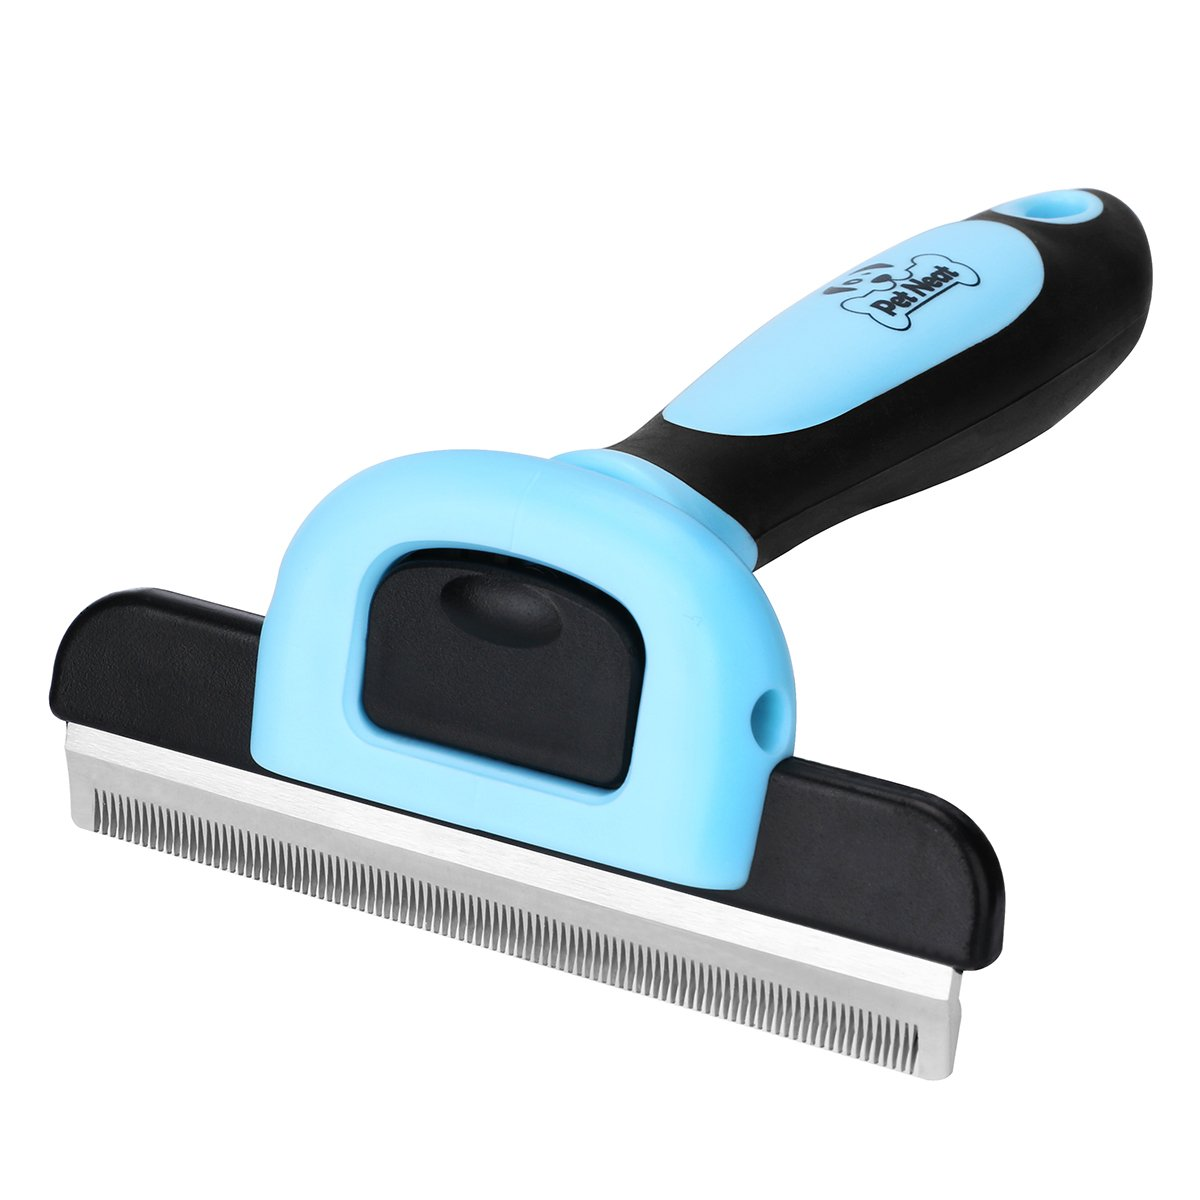 Pet Grooming Brush Effectively Reduces Shedding by Up to 95% Professional Deshedding Tool for Dogs and Cats Pet Neat Pet Grooming Glove